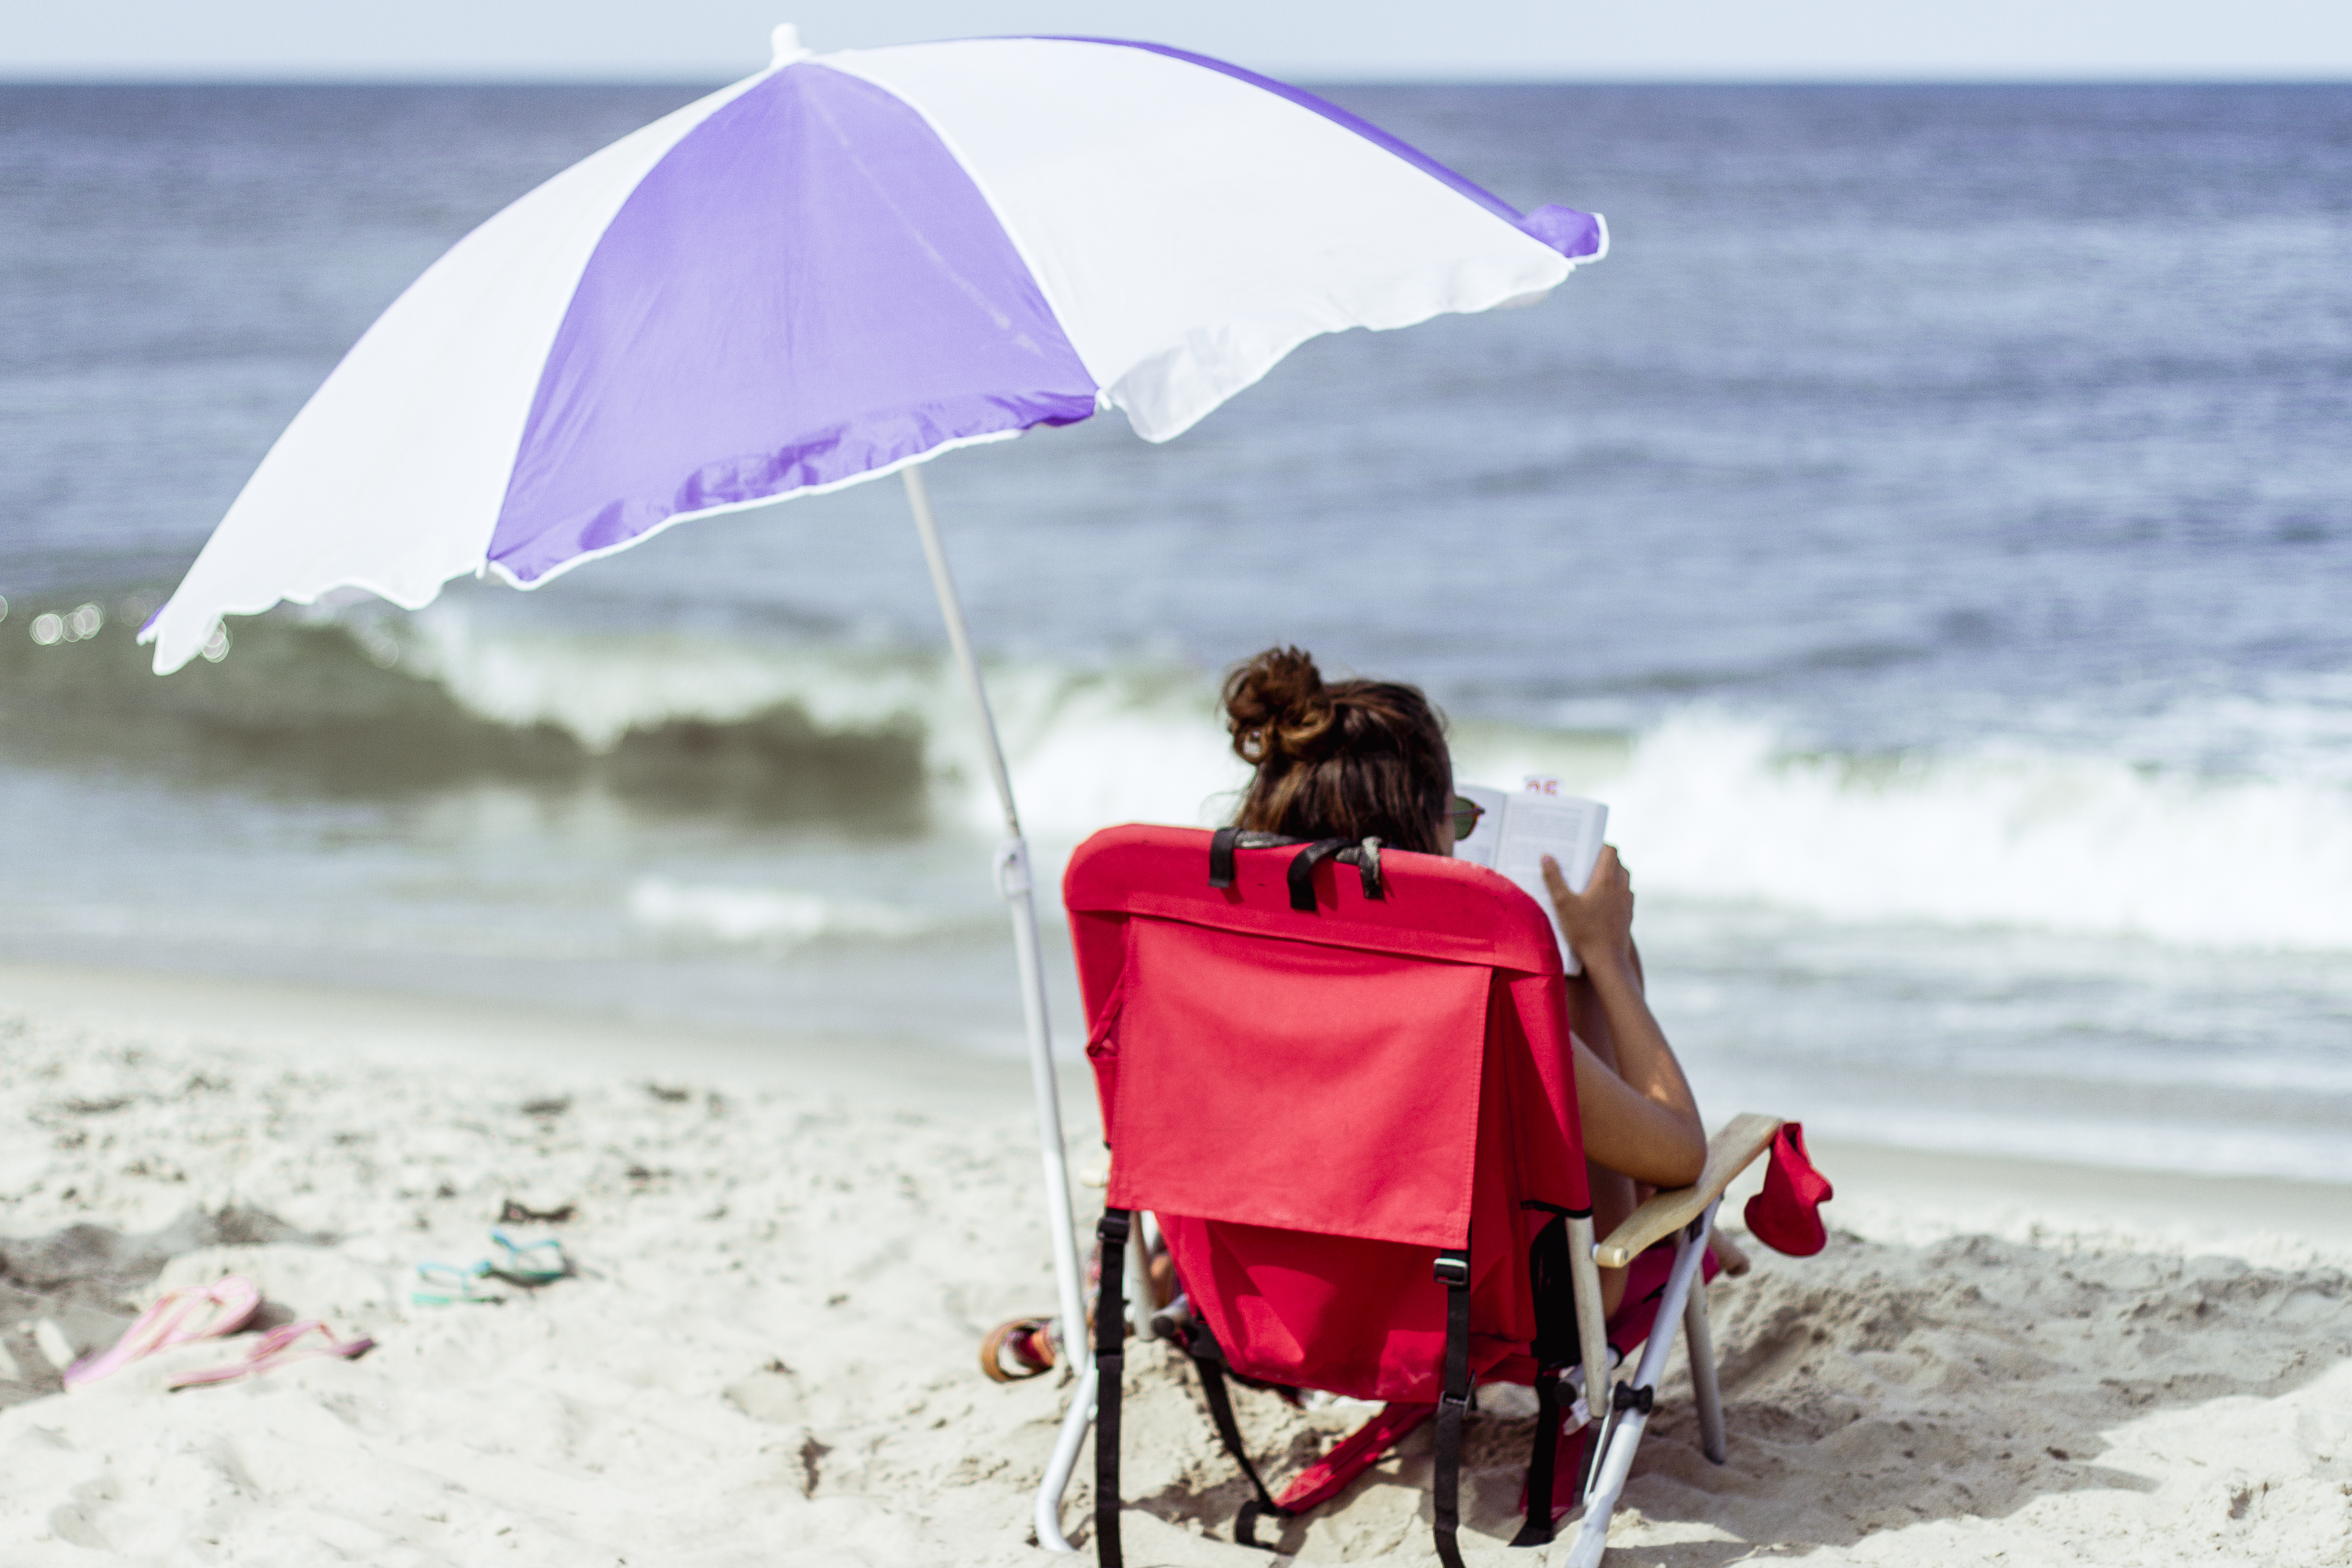 A girl reading on the beach and sitting on a red beach chair with a parasol